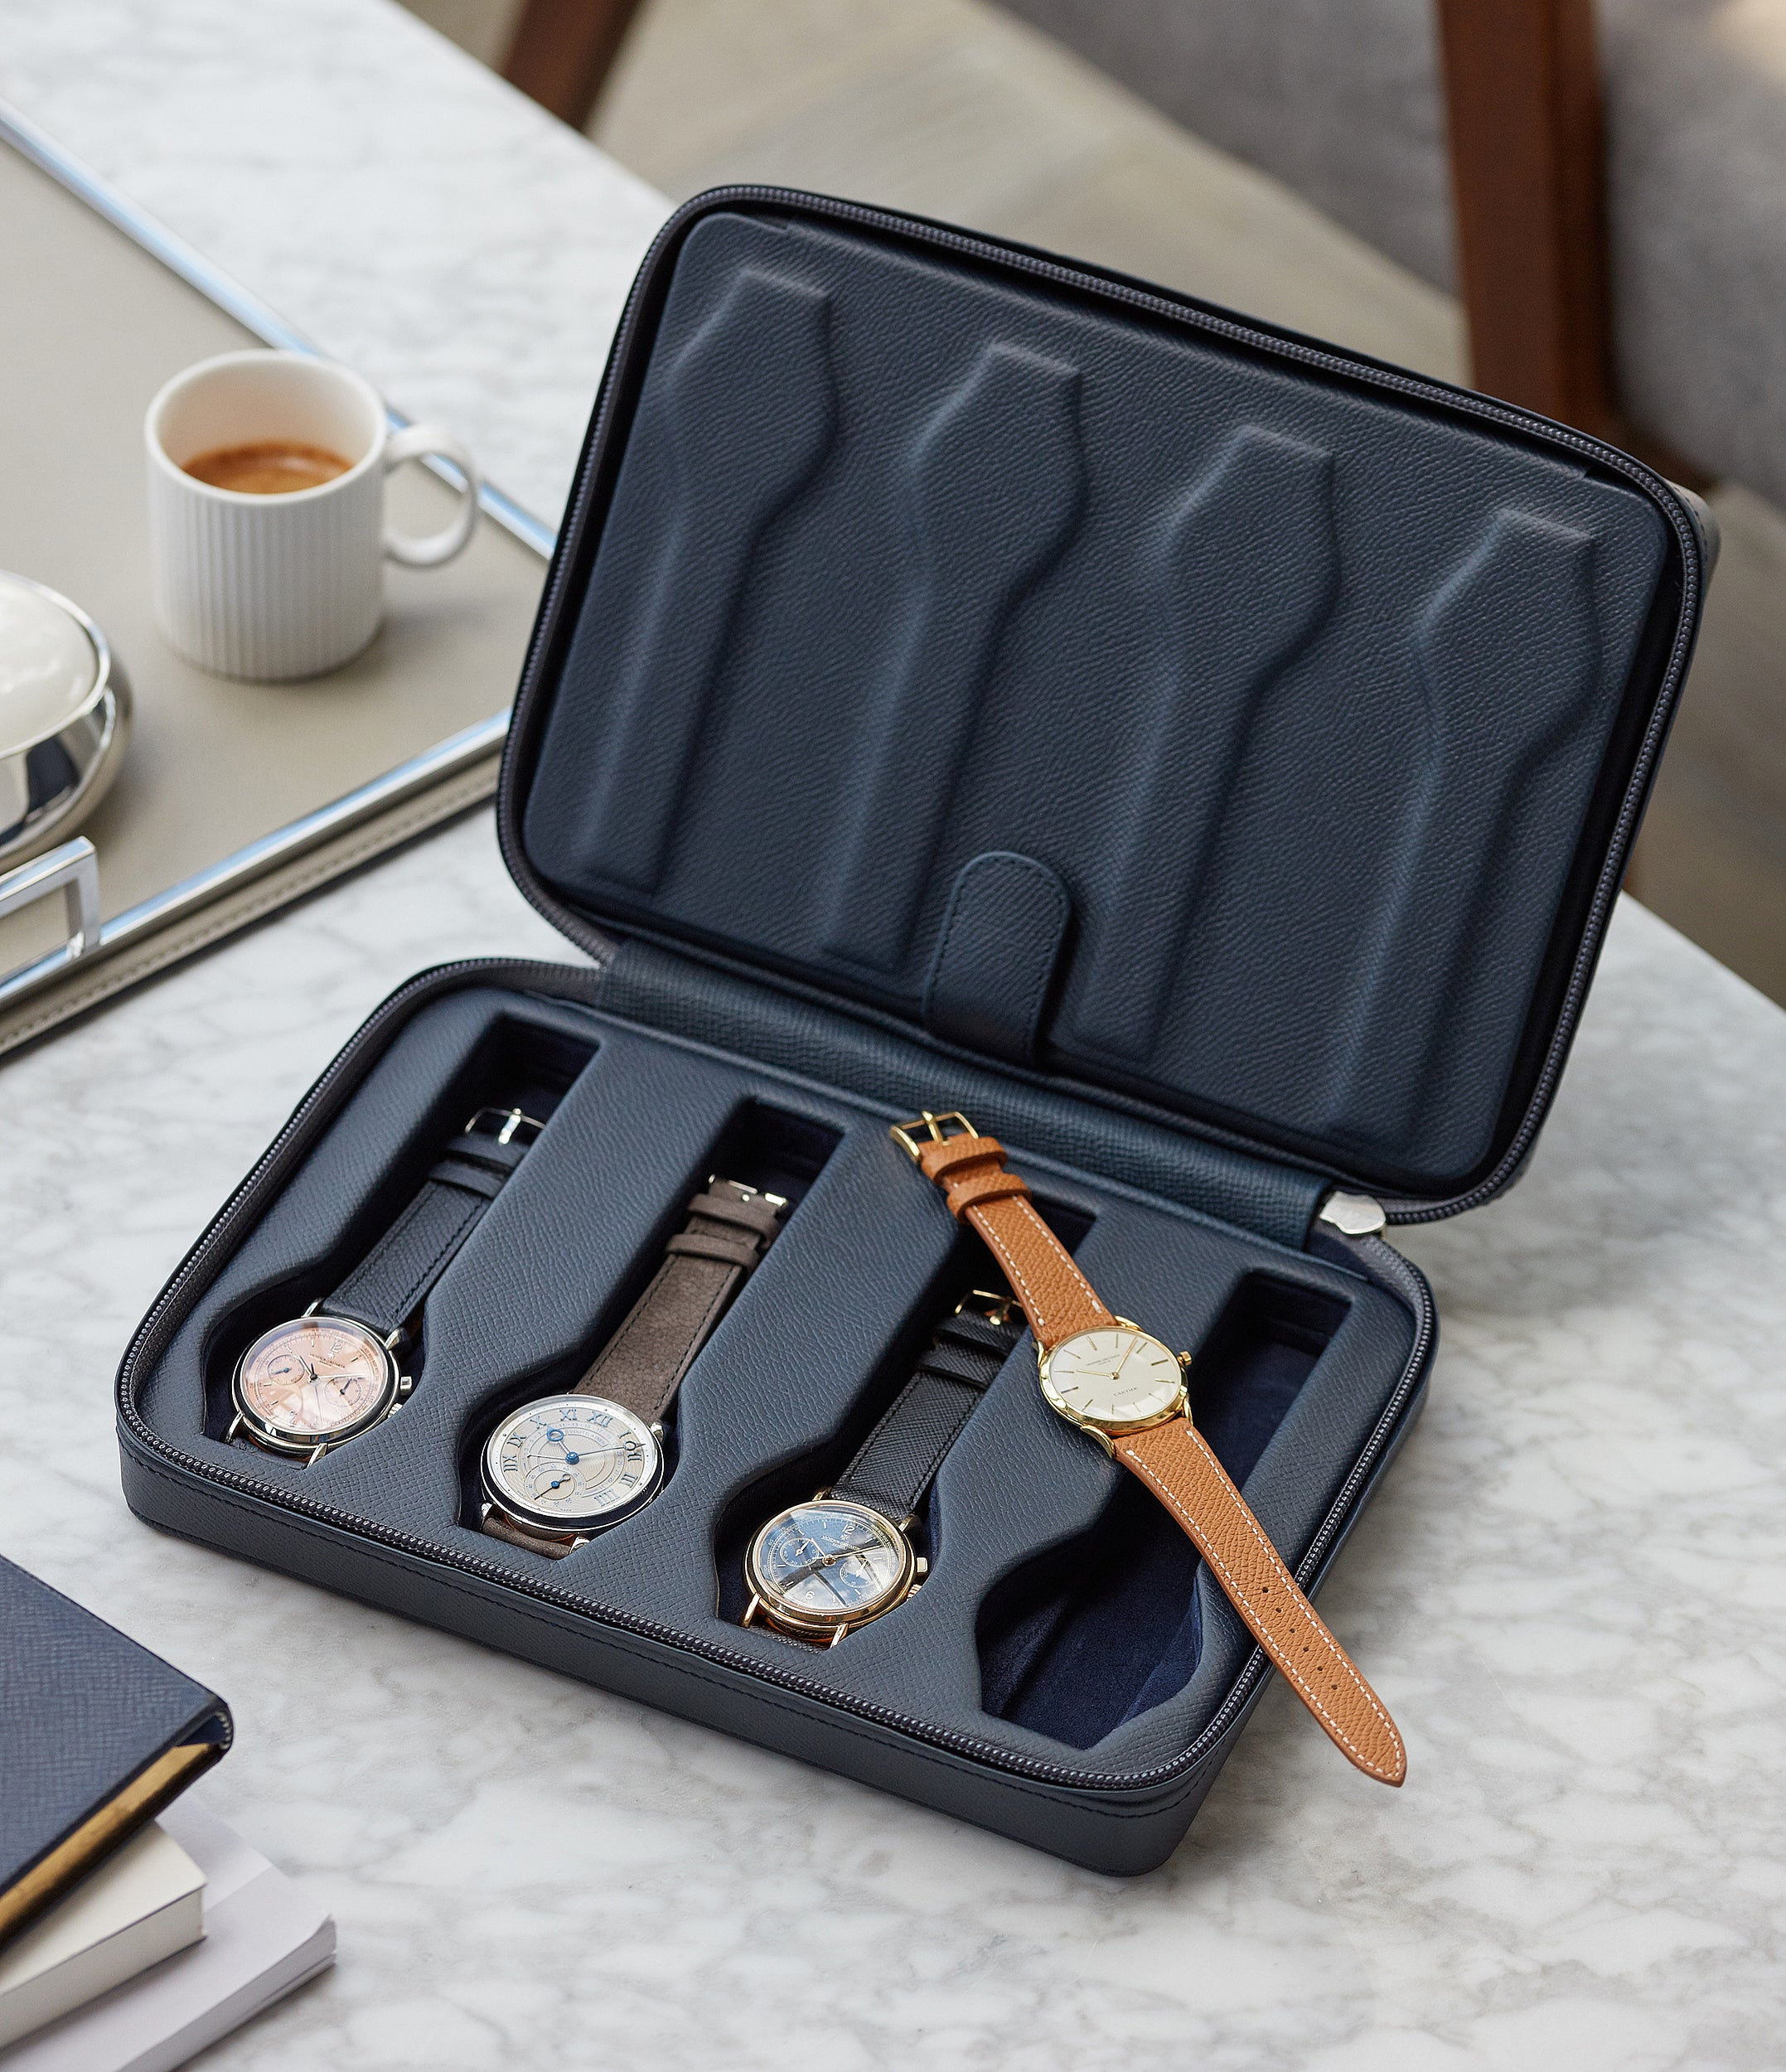 navy calfskin watch case holder accessories eight watches order online A Collected Man London